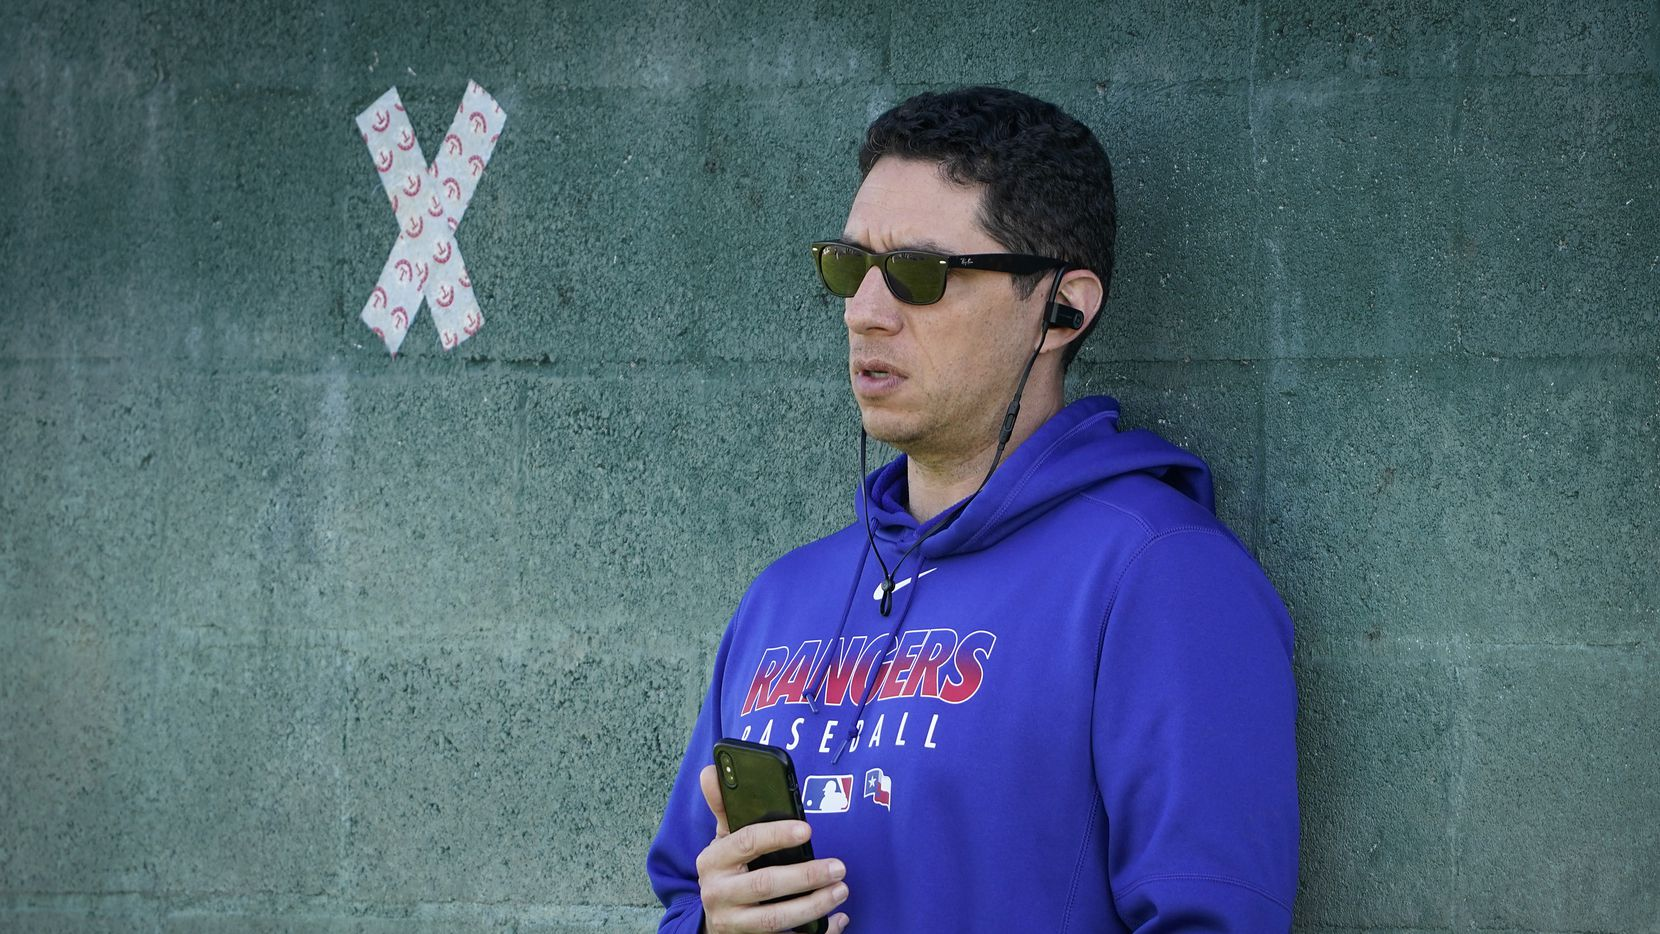 Texas Rangers general manager Jon Daniels leans against a wall in the bullpen while talking on the telephone during a spring training workout at the team's training facility on Sunday, Feb. 16, 2020, in Surprise, Ariz.